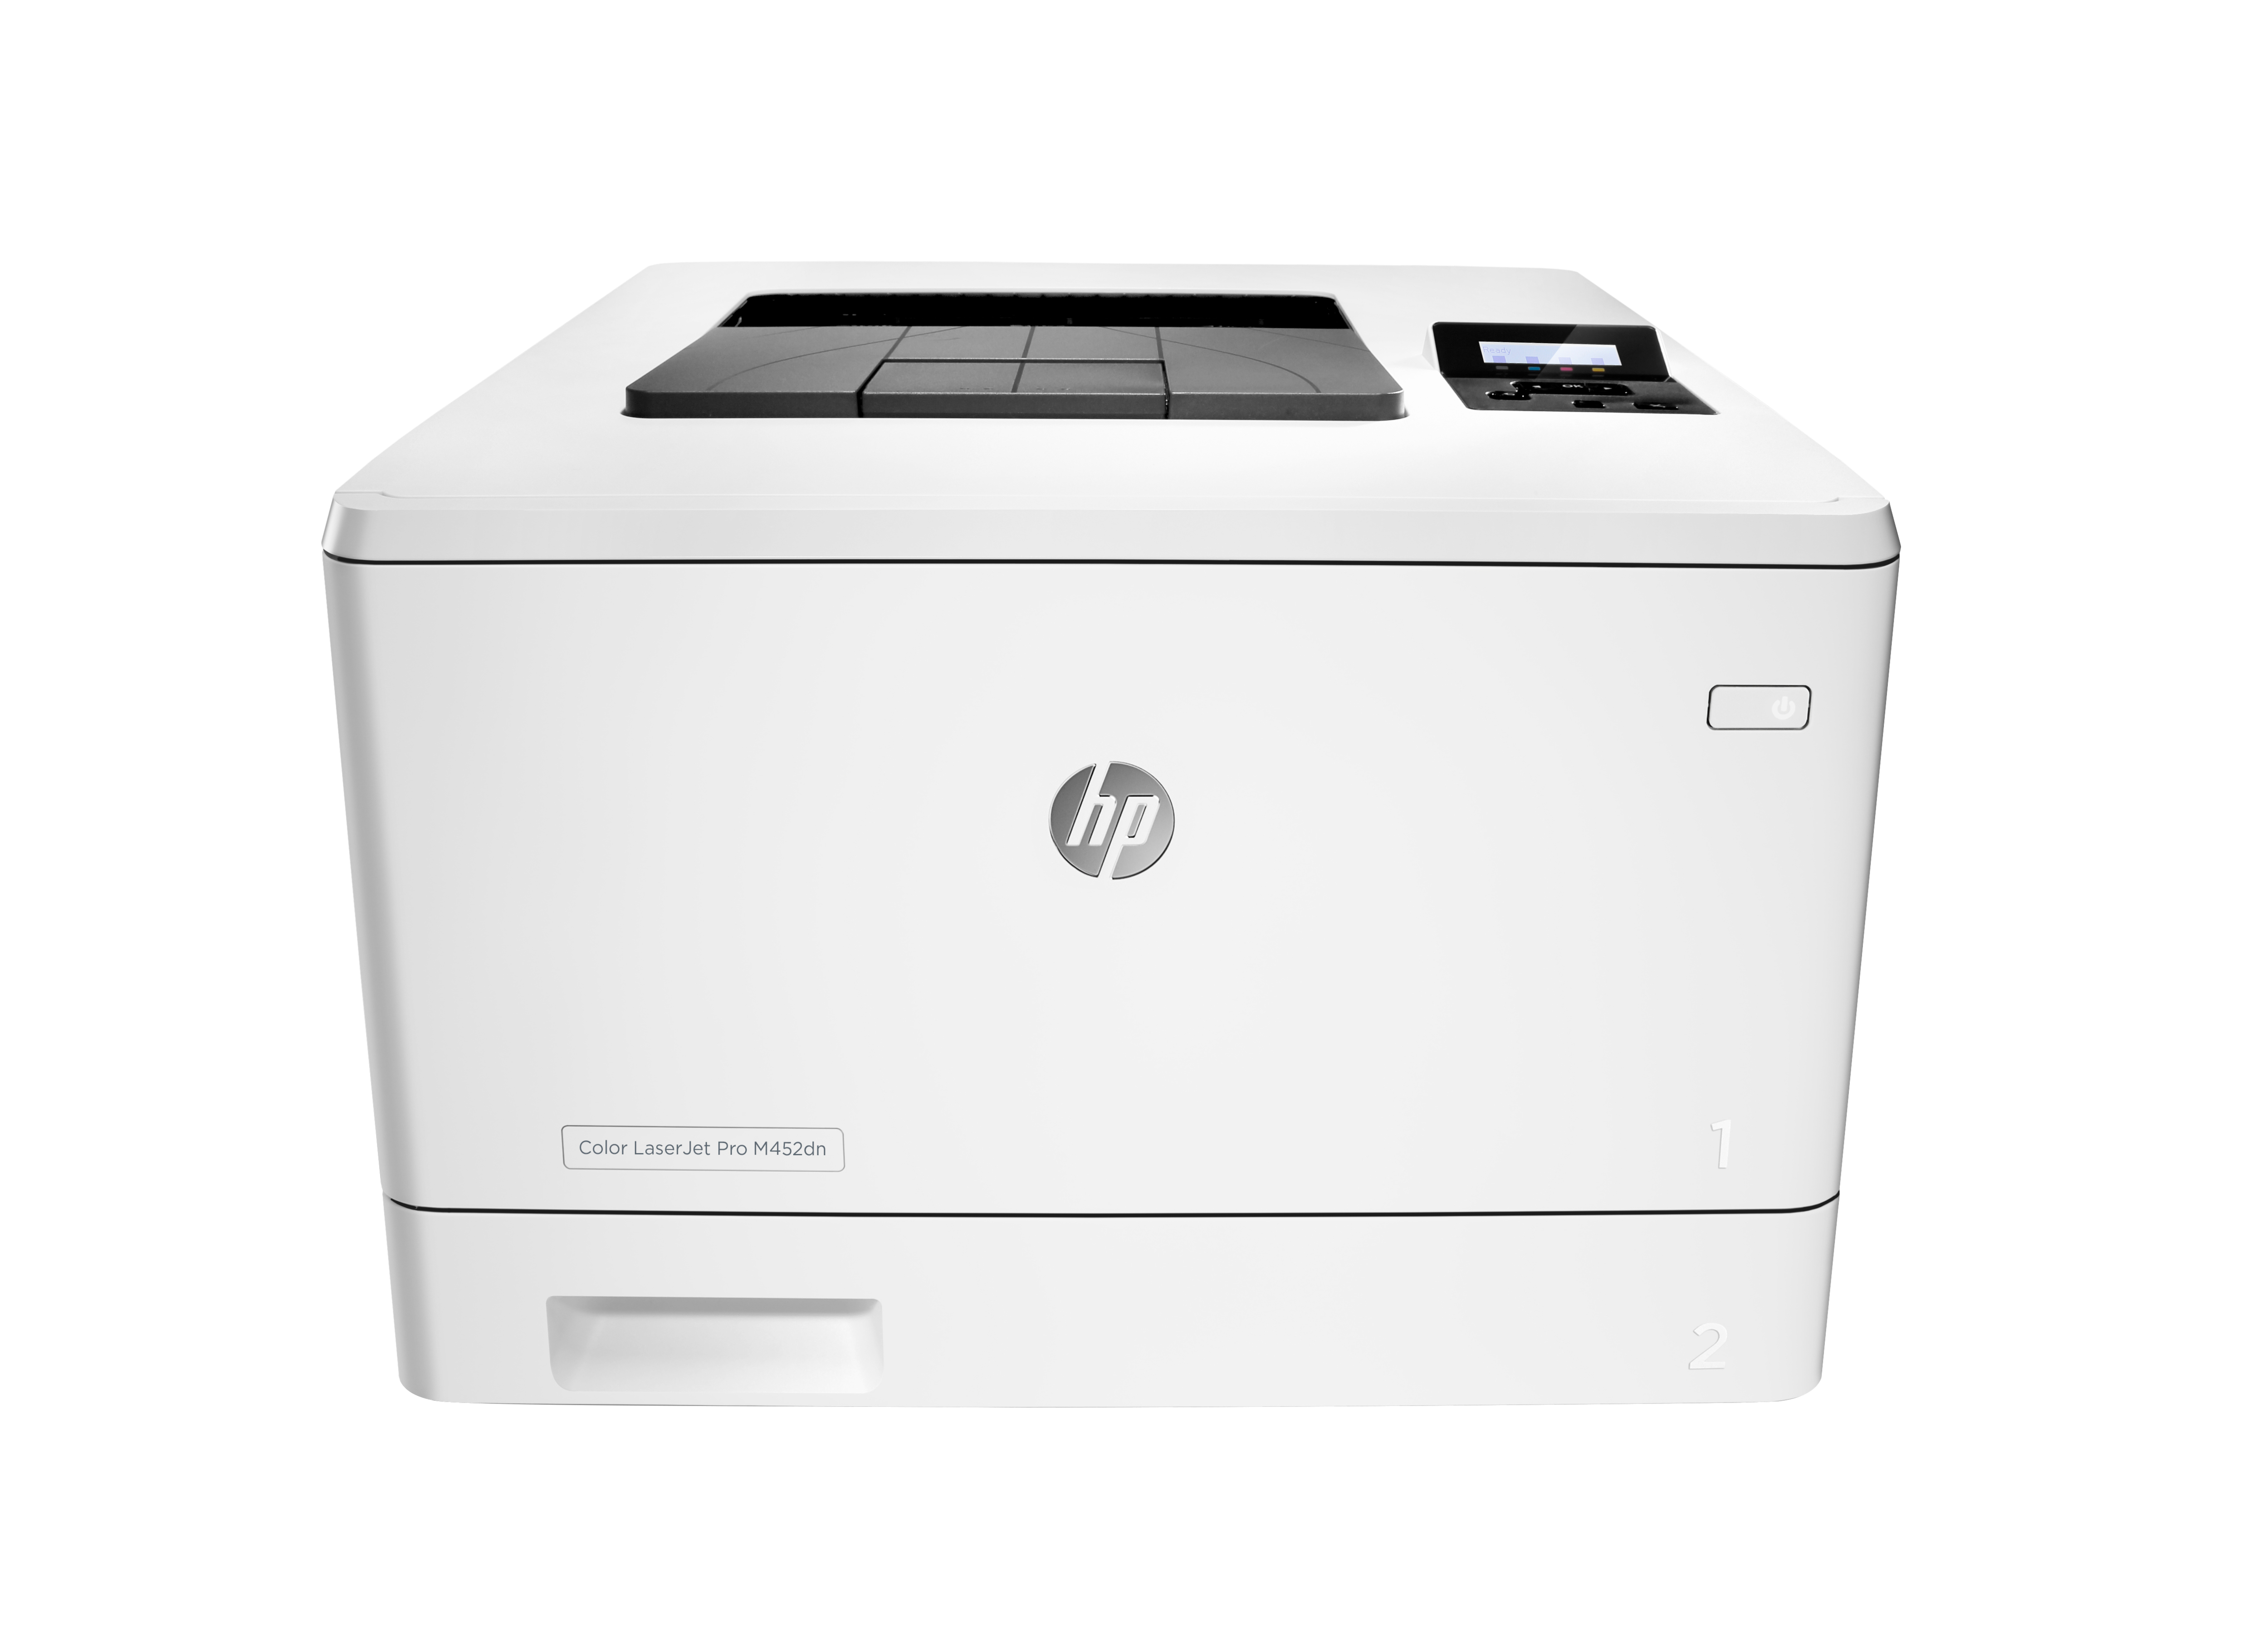 HP Color LaserJet Pro M452dn Printer 27ppm A4/28ppm Letter color laser printer wth auto-duplex printing and network built in HP Color LJ Pro M452dn Prntr:EUR - CF389A#B19